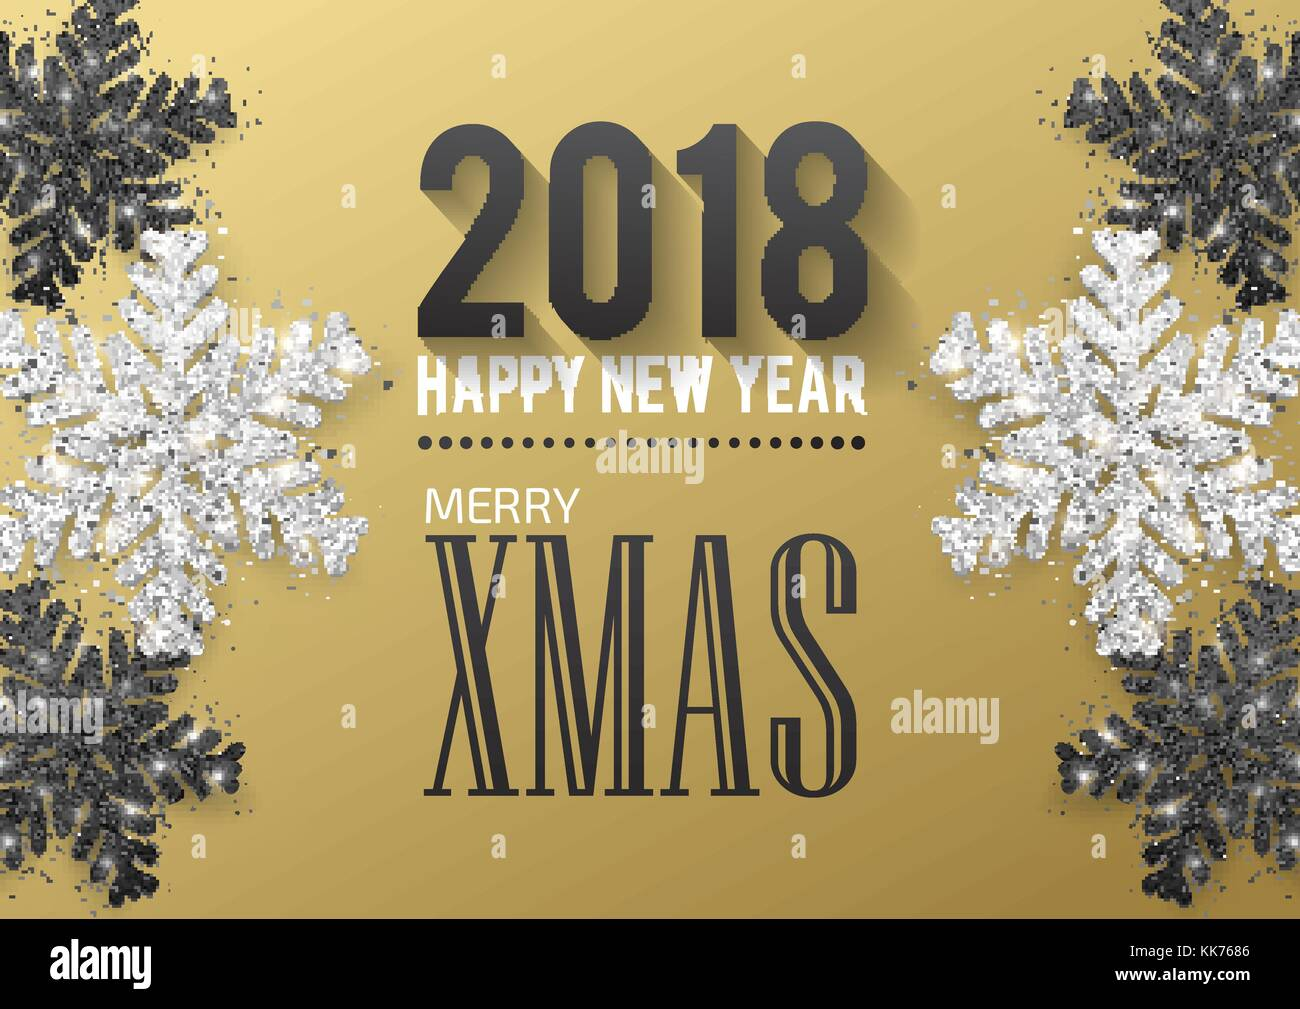 greeting card invitation with happy new year 2018 and christmas